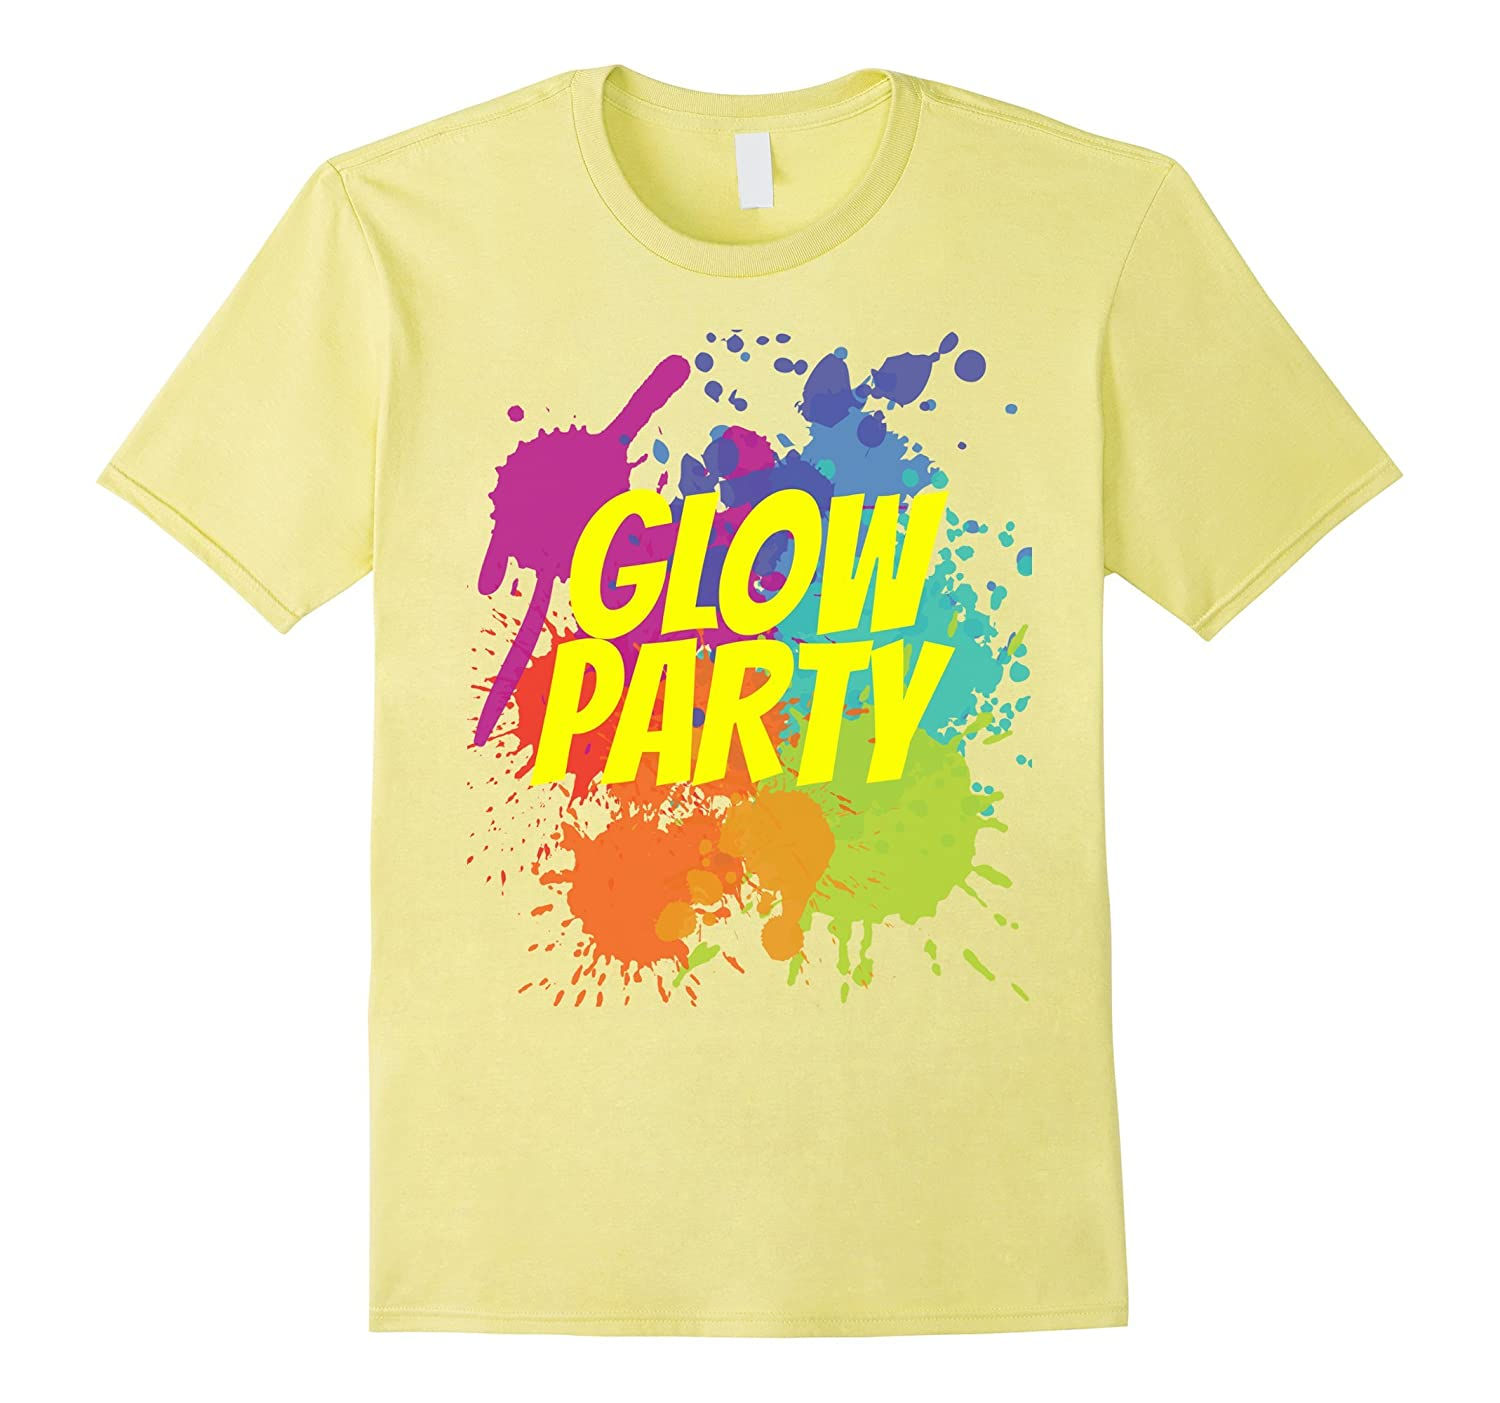 Glow Party Birthday Shirt With Splatters CL